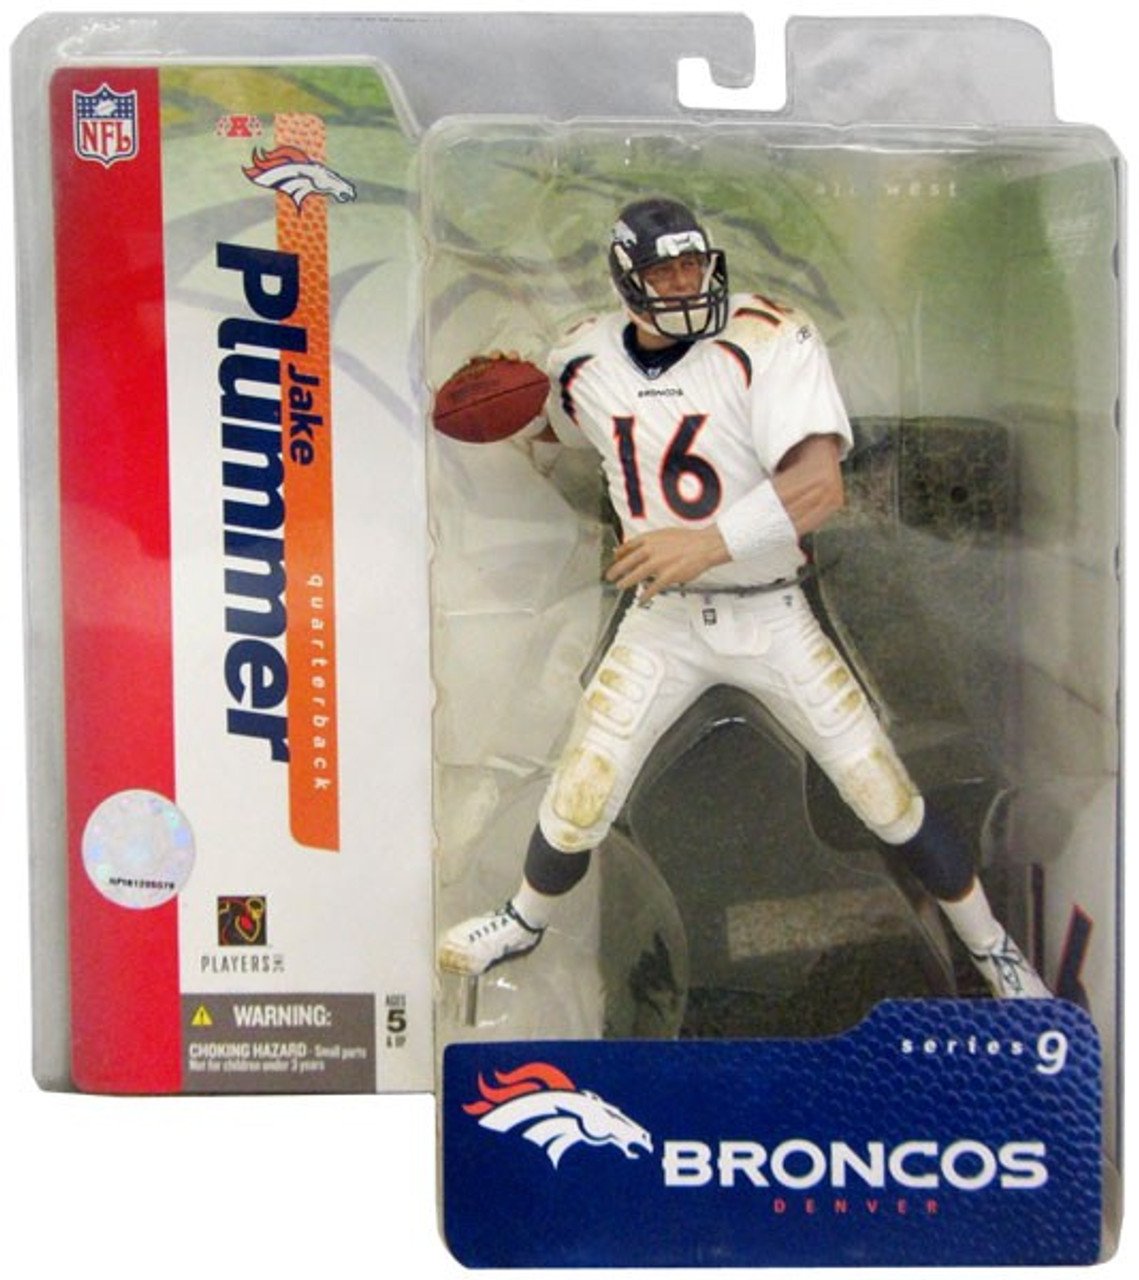 McFarlane Toys NFL Denver Broncos Sports Picks Series 9 Jake Plummer Action Figure [White Jersey Variant]